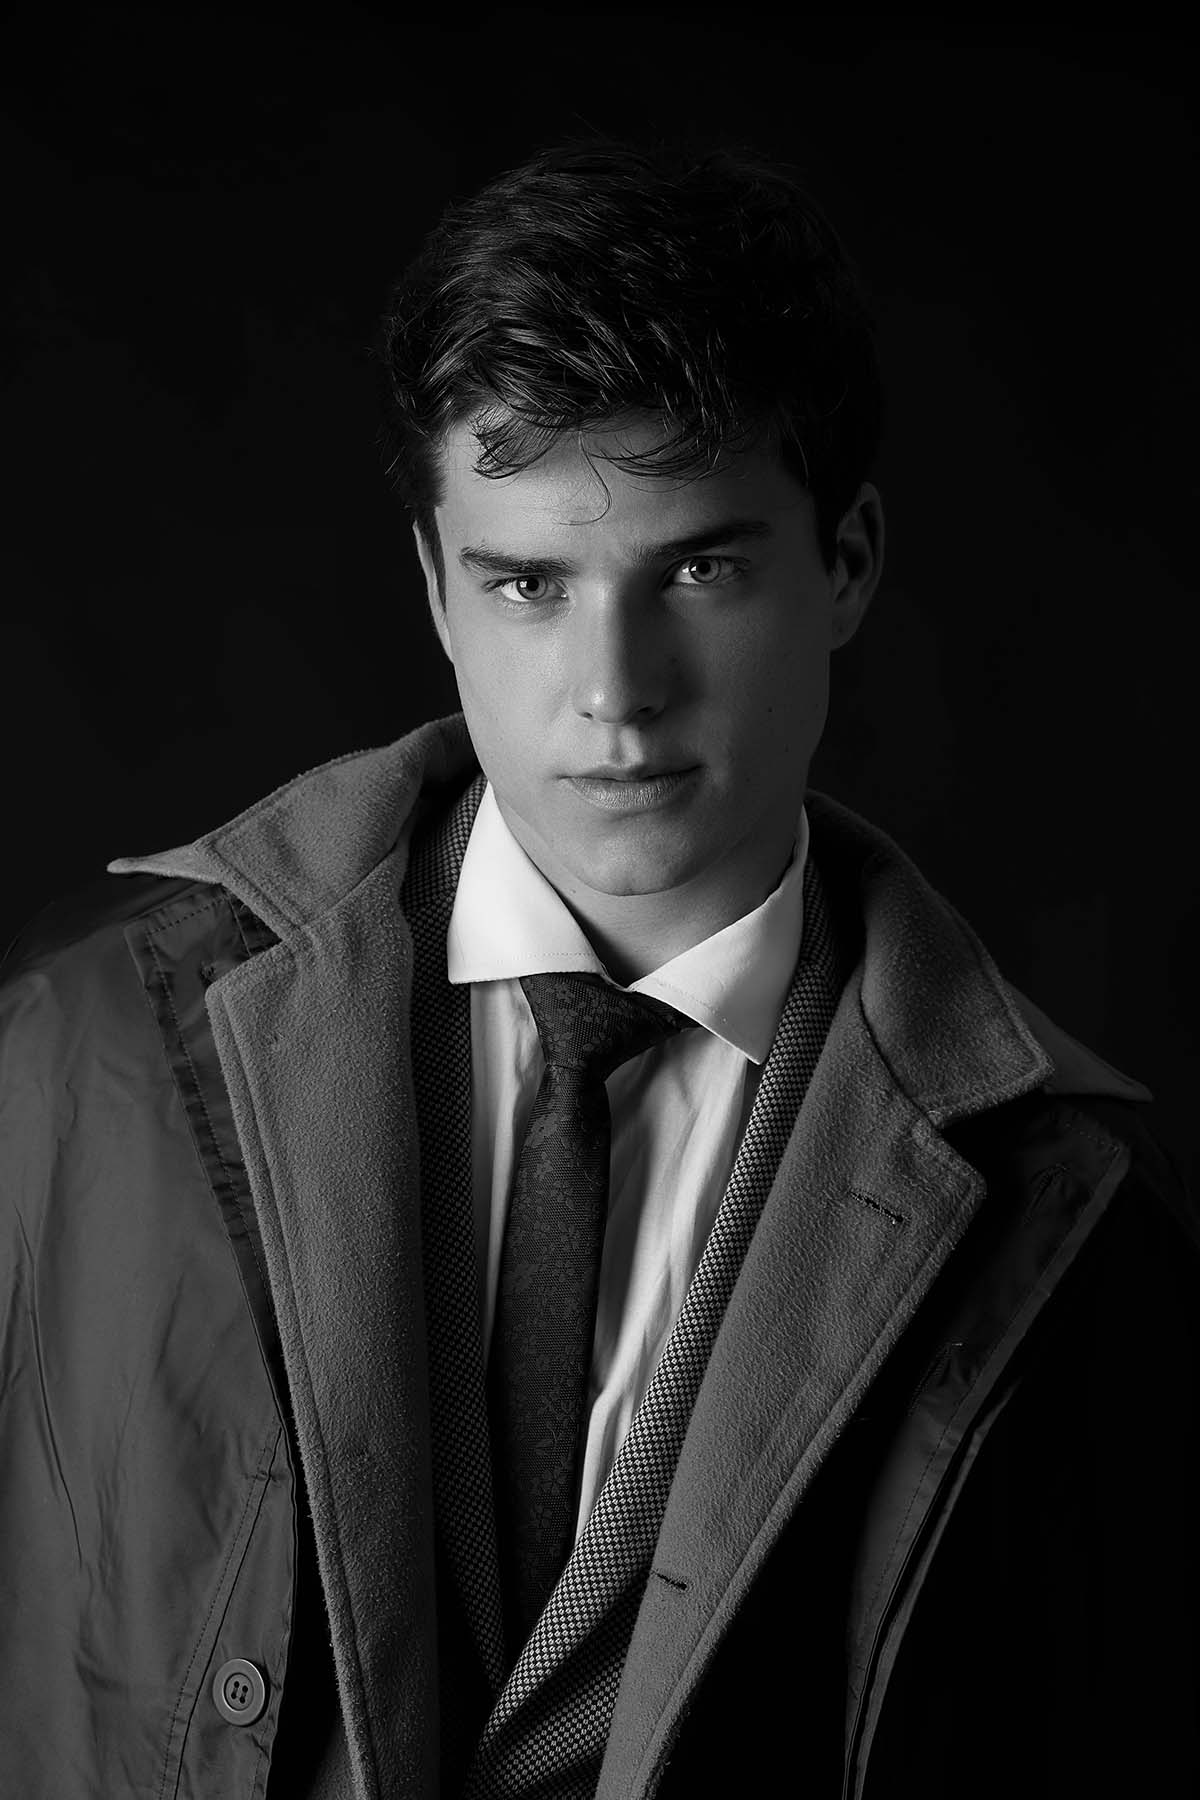 Pedro Maia by Sergio Bochert for Brazilian Male Model